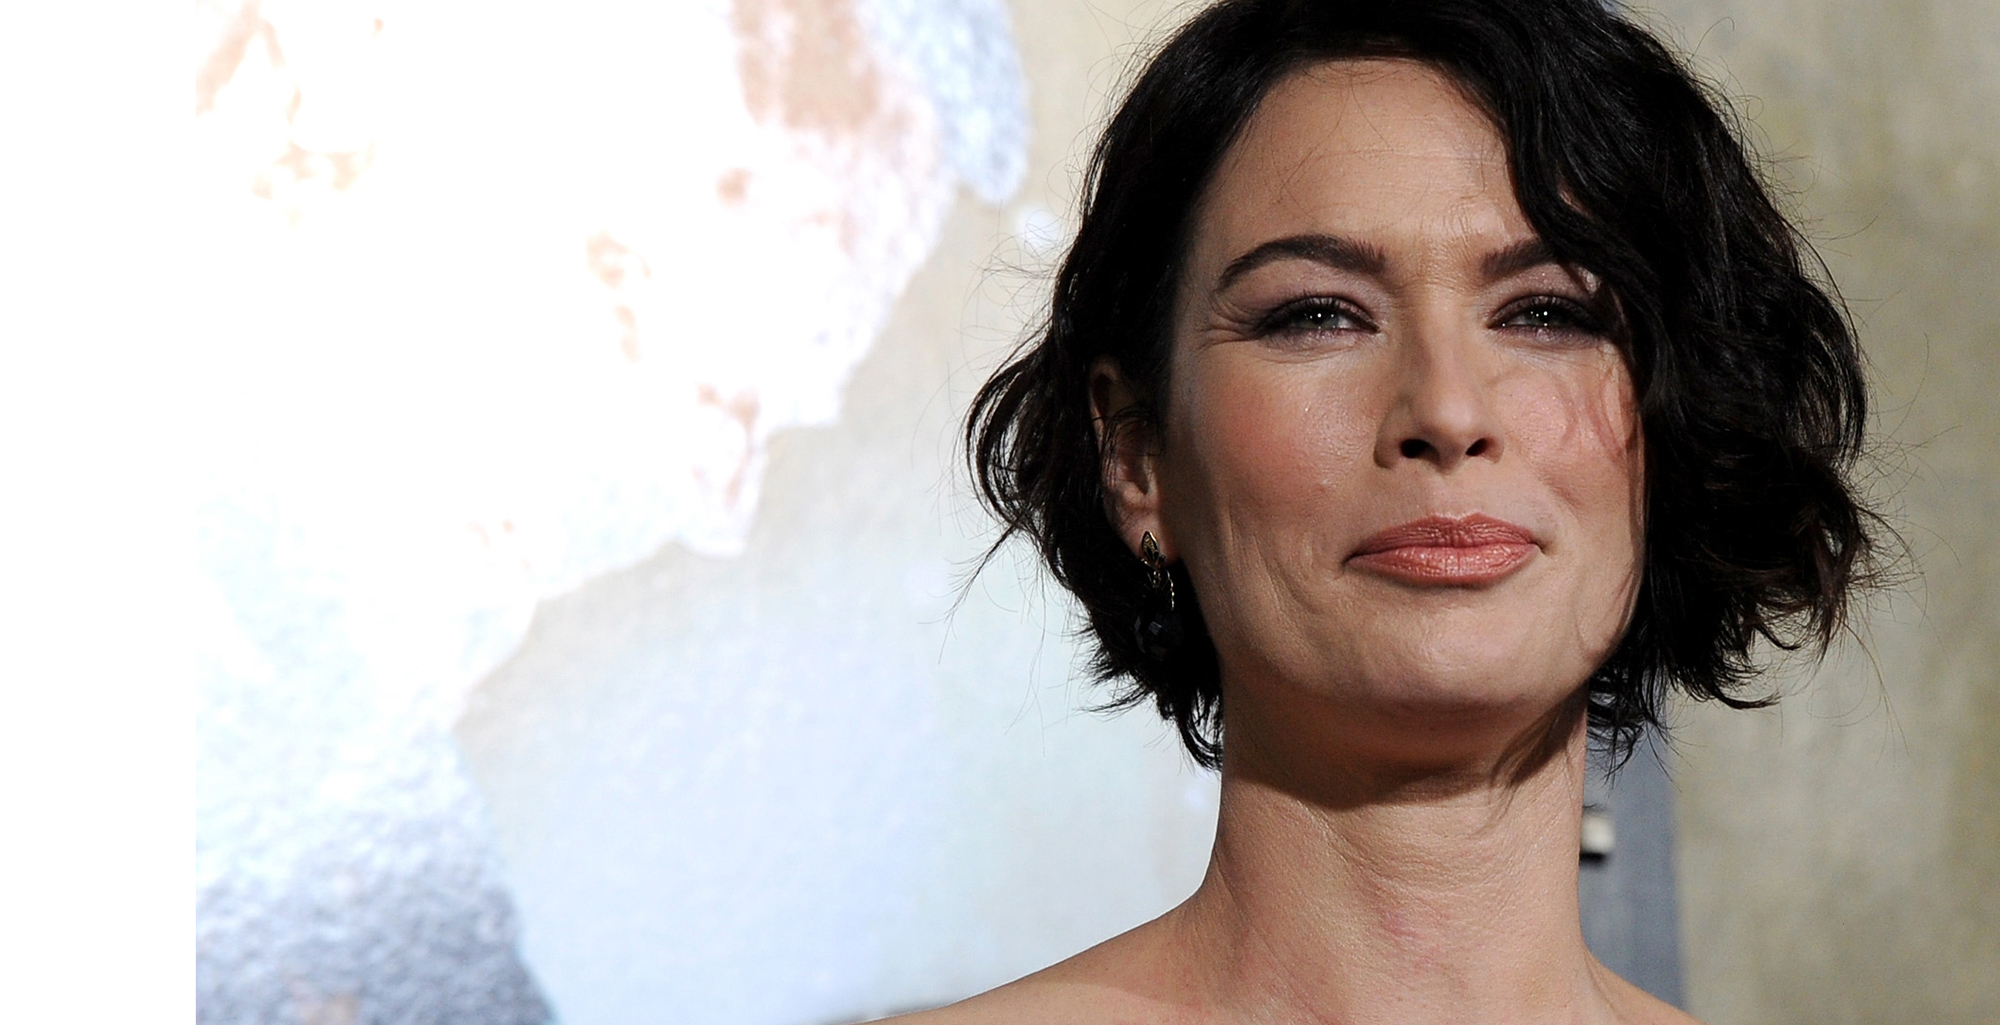 The 43-year old daughter of father John Headey and mother Sue Headey, 166 cm tall Lena Headey in 2017 photo